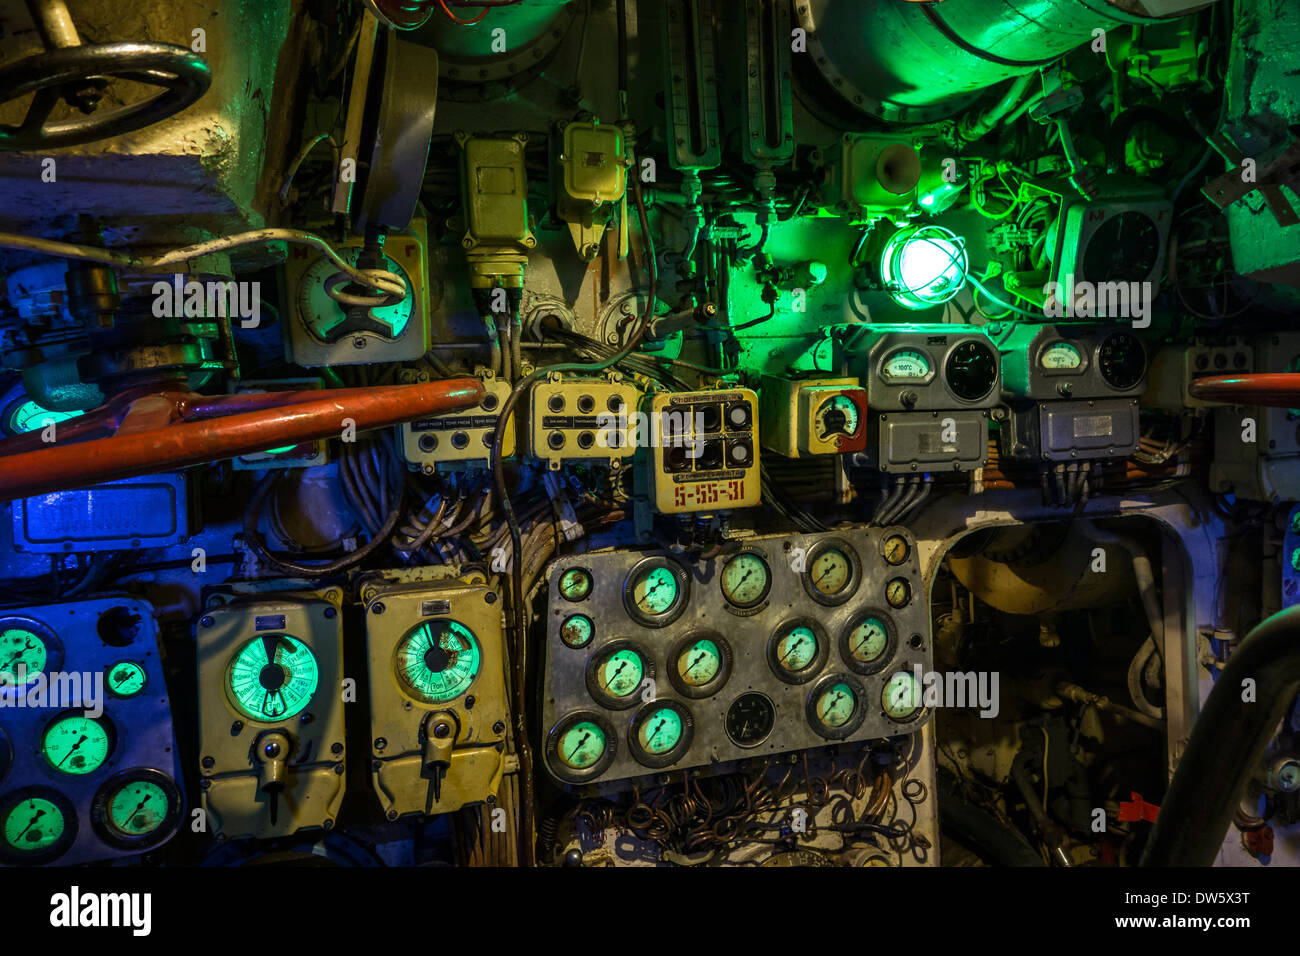 Green indicators and dials on instruments in operations / control room inside Russian submarine B-143 / U-480 Foxtrot, Zeebrugge - Stock Image